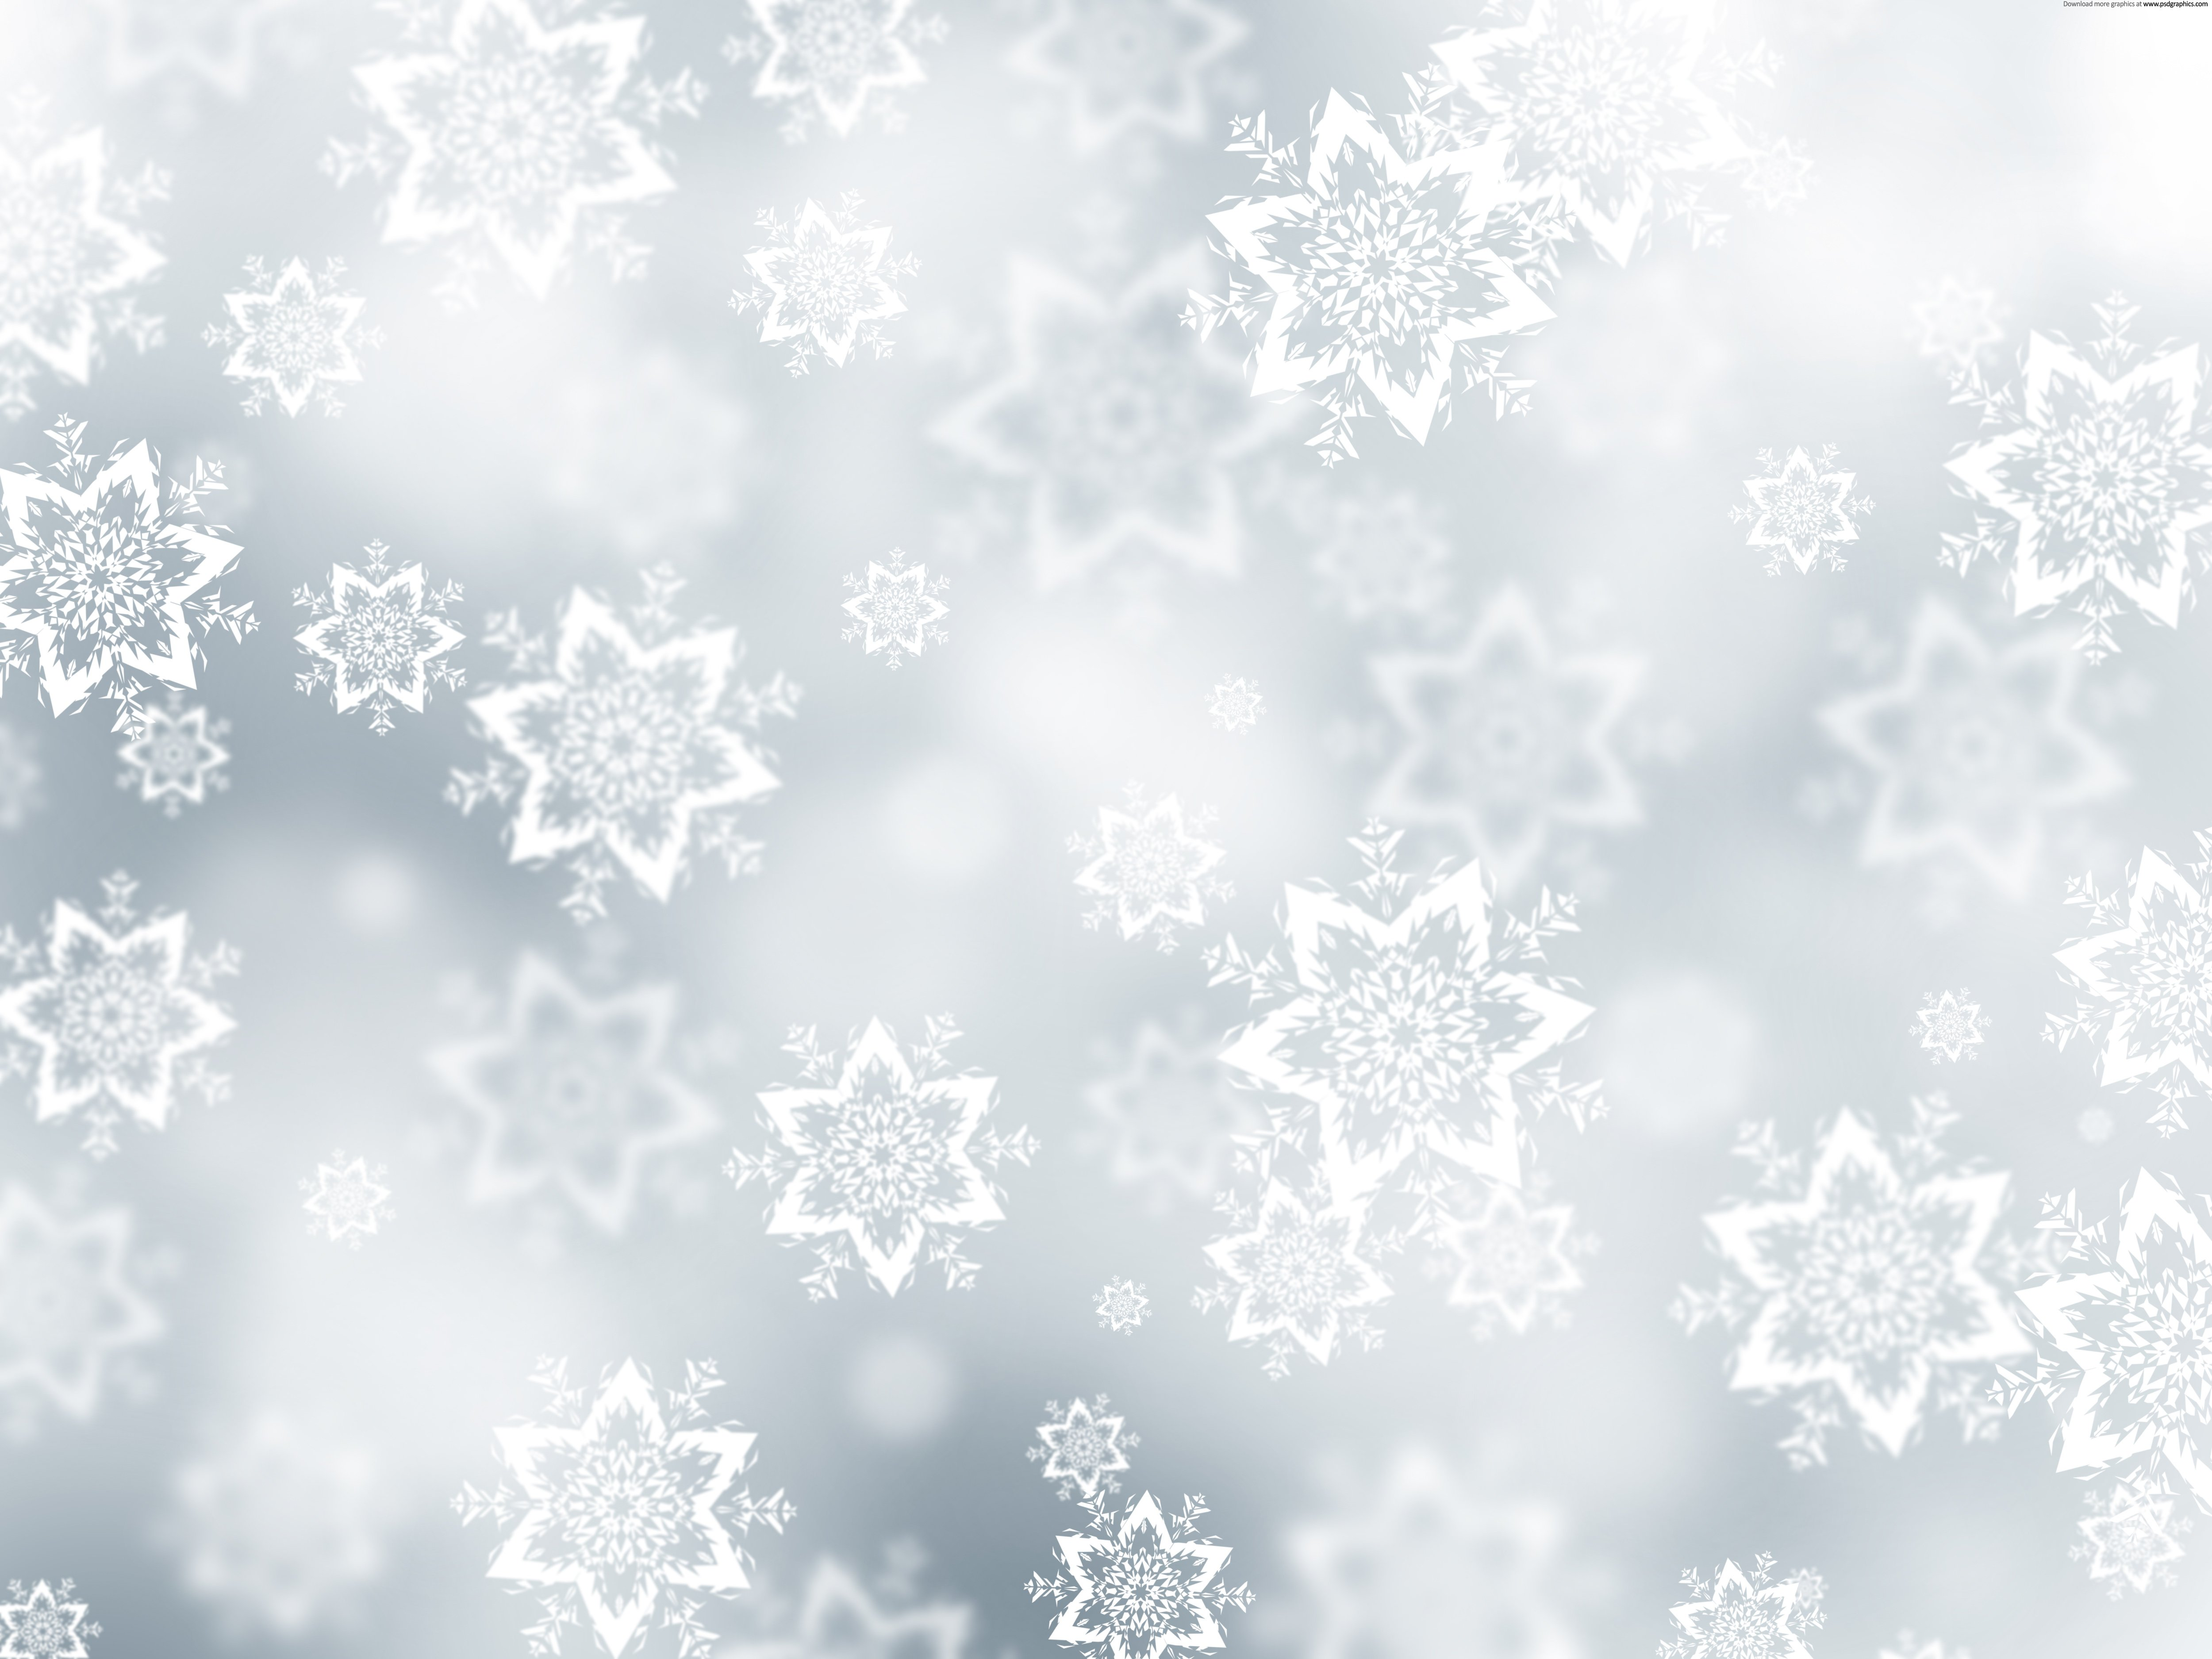 snow background abstract christmas background abstract snow background 5000x3750